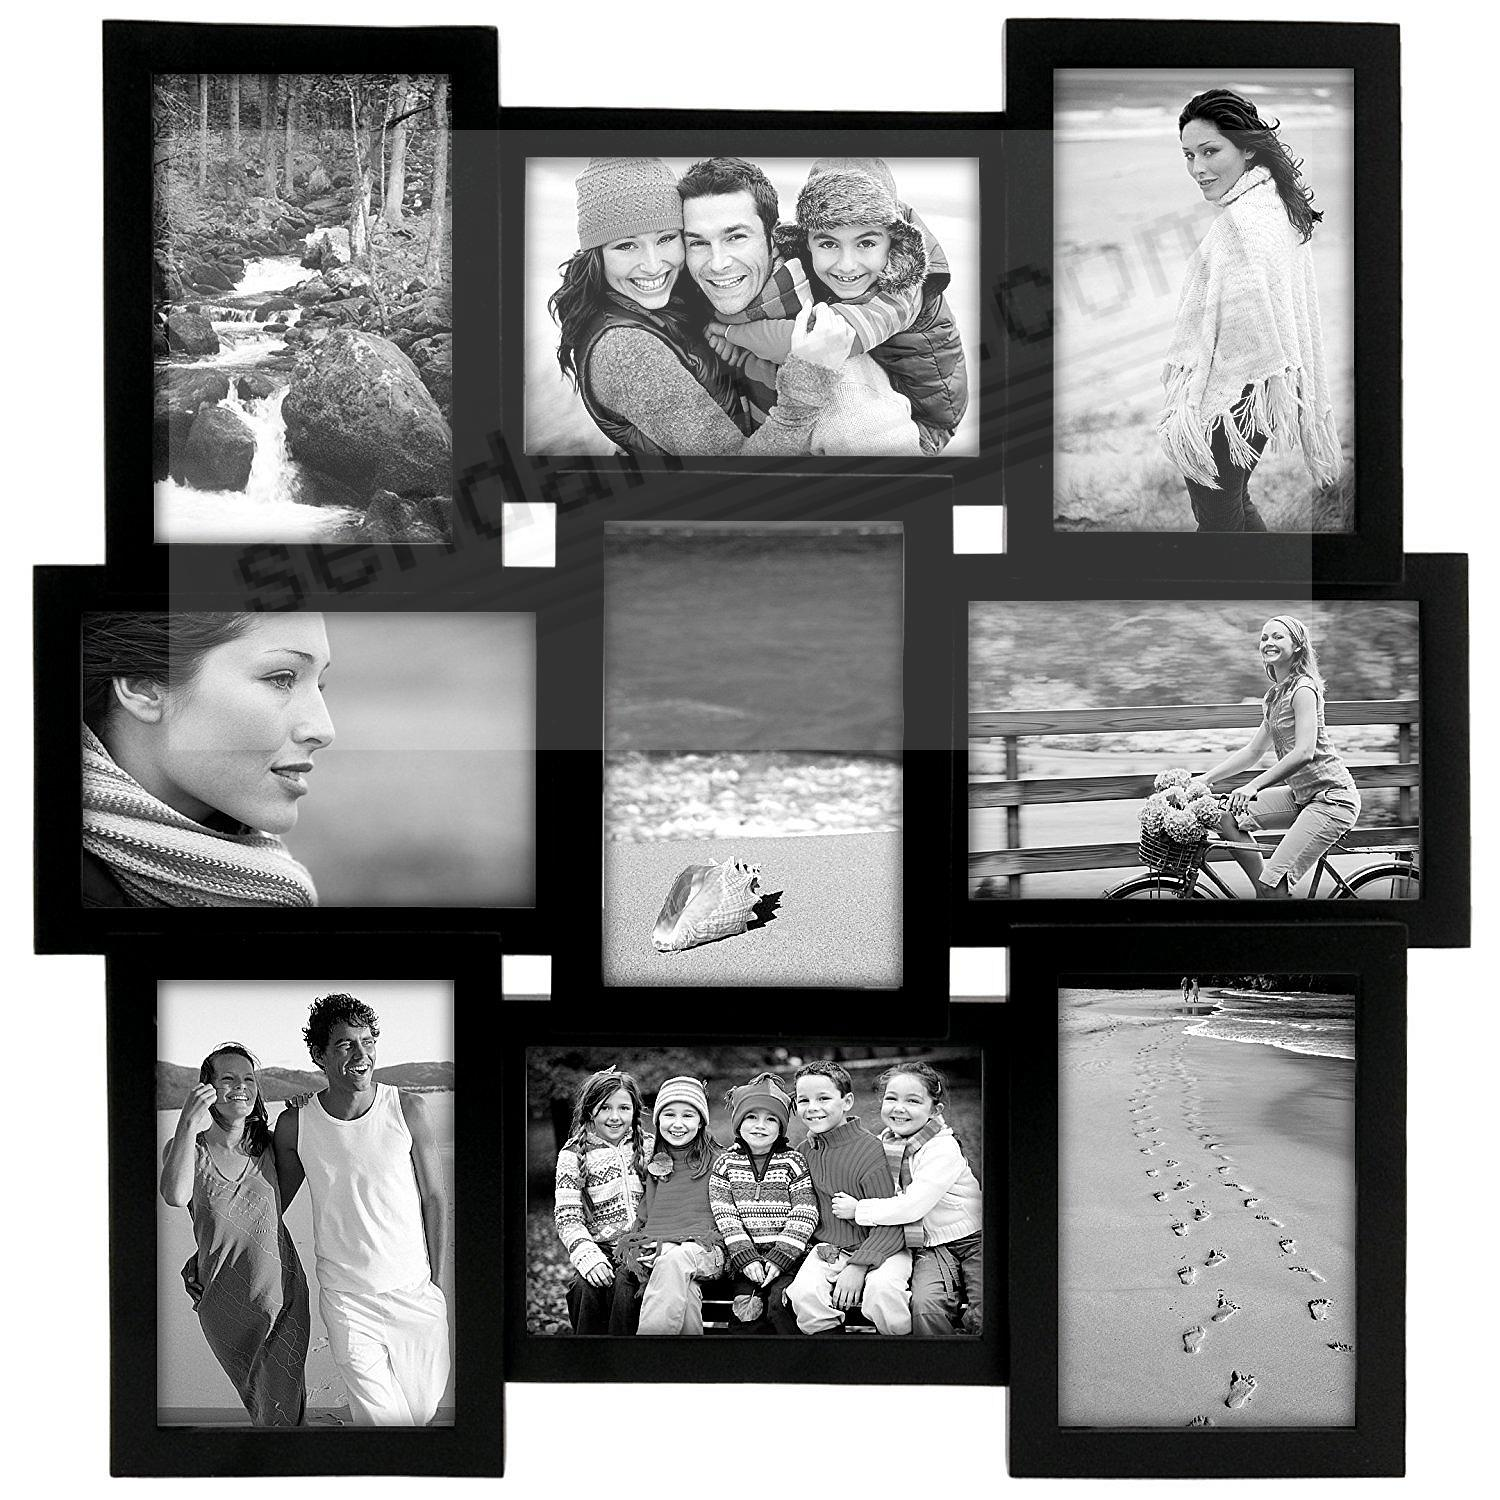 Black PUZZLE collage displays (9) 4x6 photos